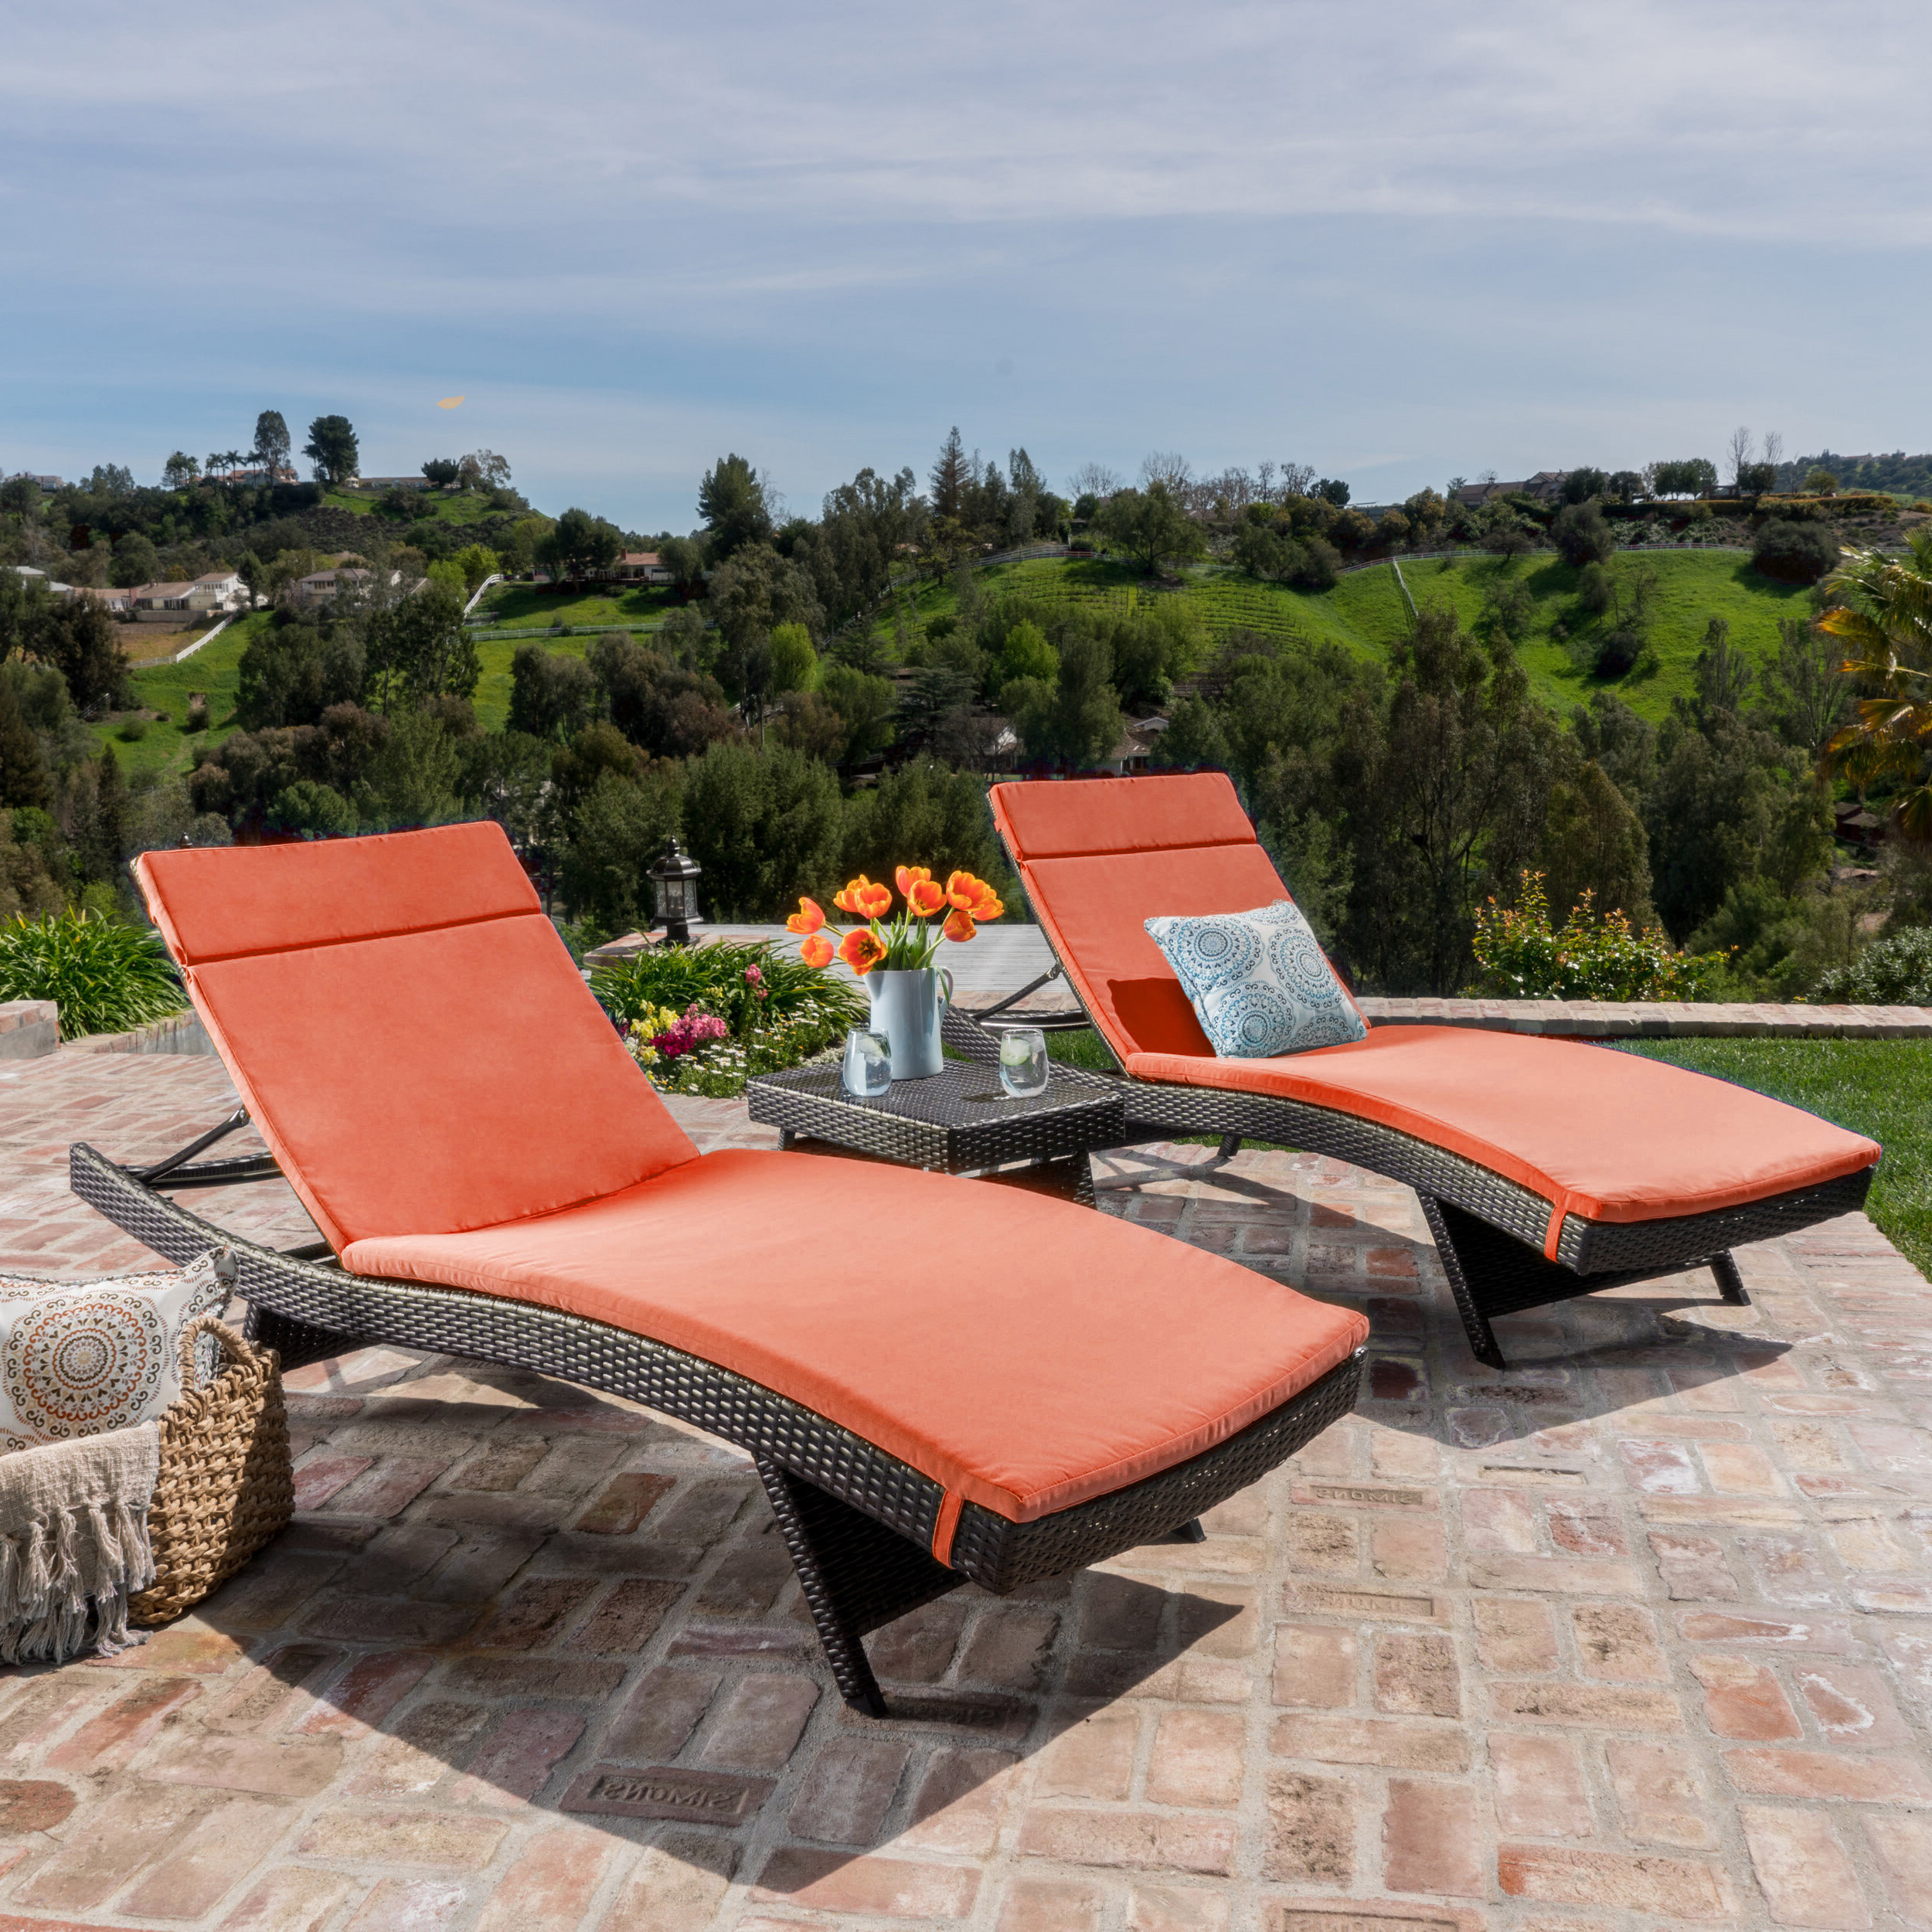 Trendy Bradenton Outdoor Wicker Chaise Lounges With Cushions With Hans Cagliari Wicker Chaise Lounge Set With Cushion (View 17 of 25)